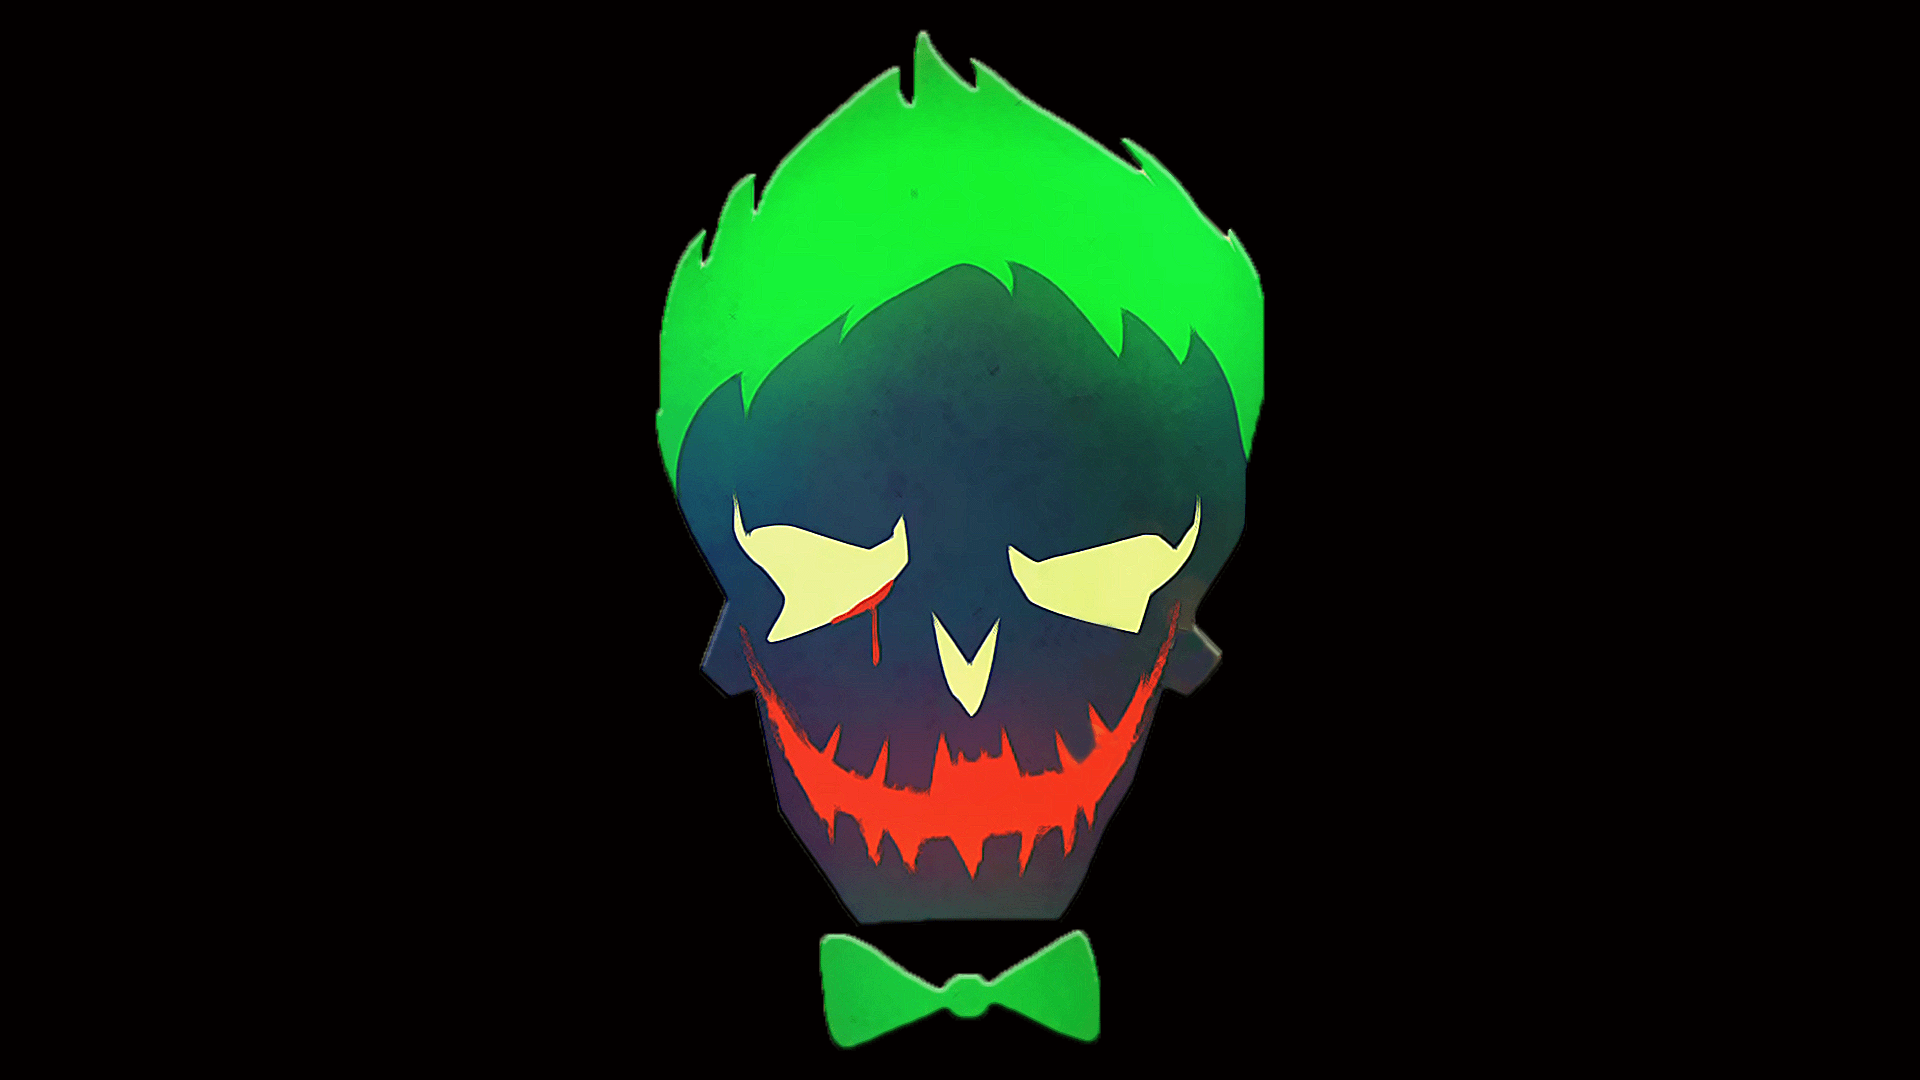 Joker hd wallpapers for iphone